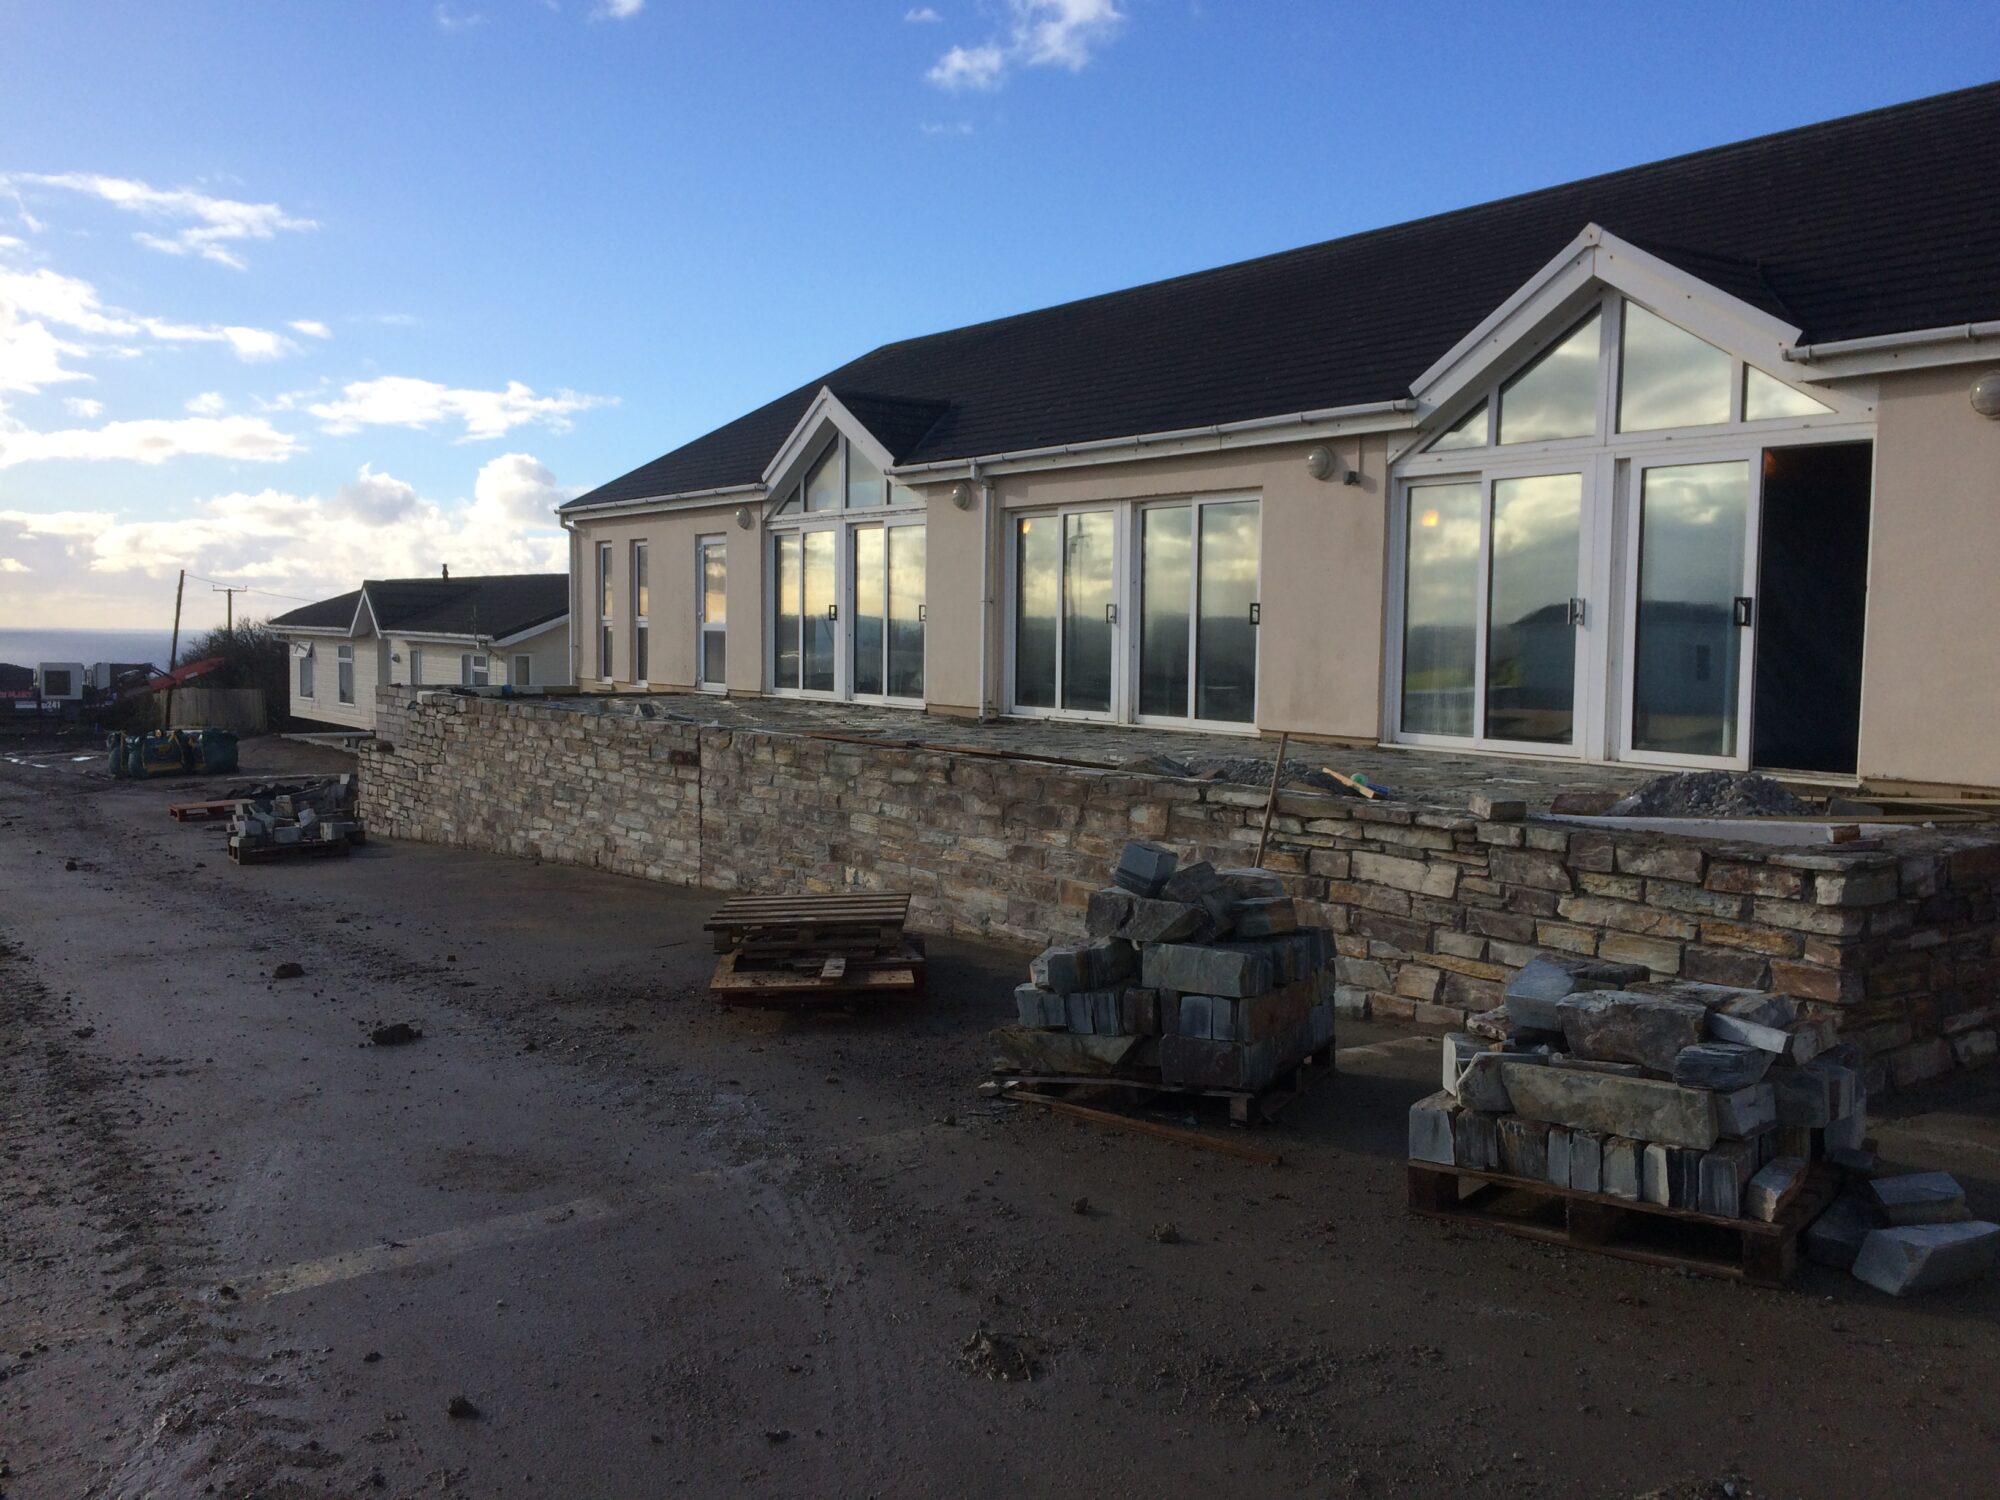 Exterior photo of Sandymouth's facilities